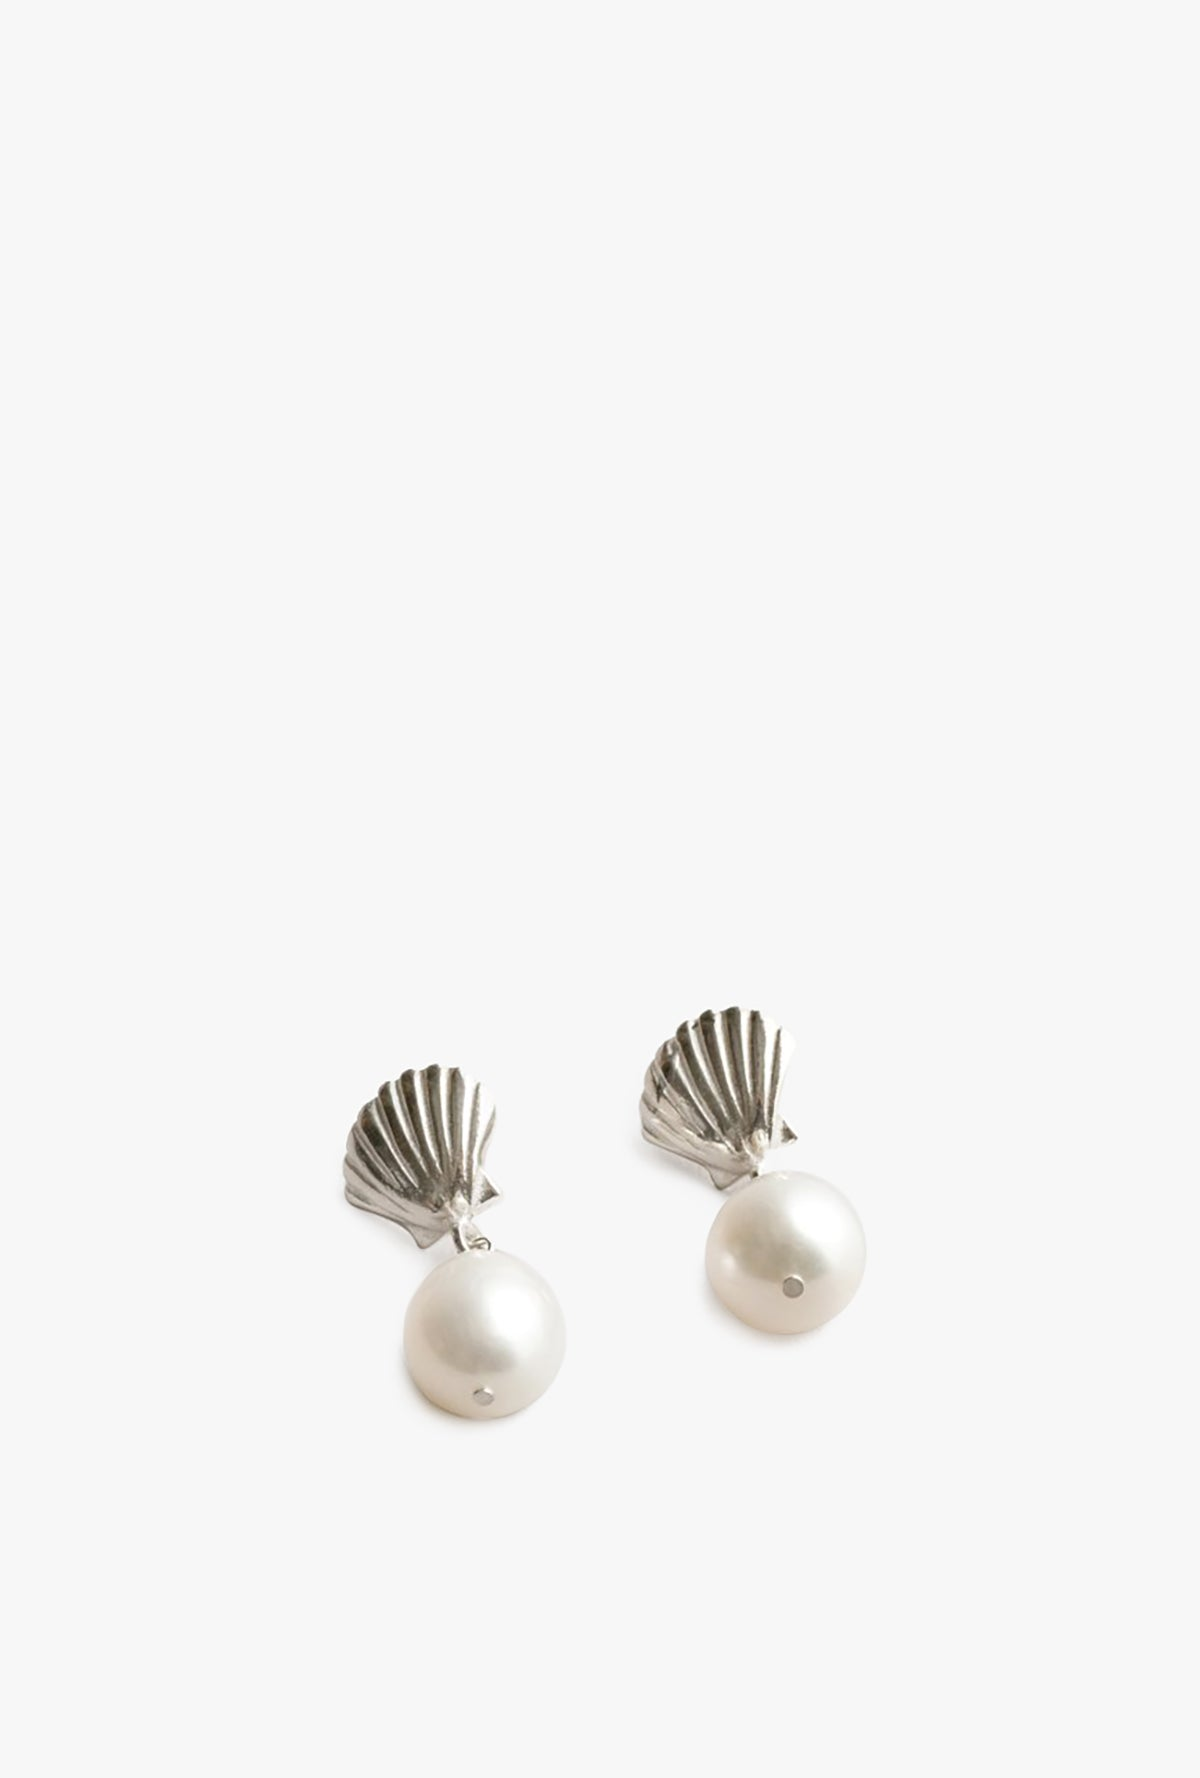 Marcel Pearl Stud Earrings - STERLING SILVER